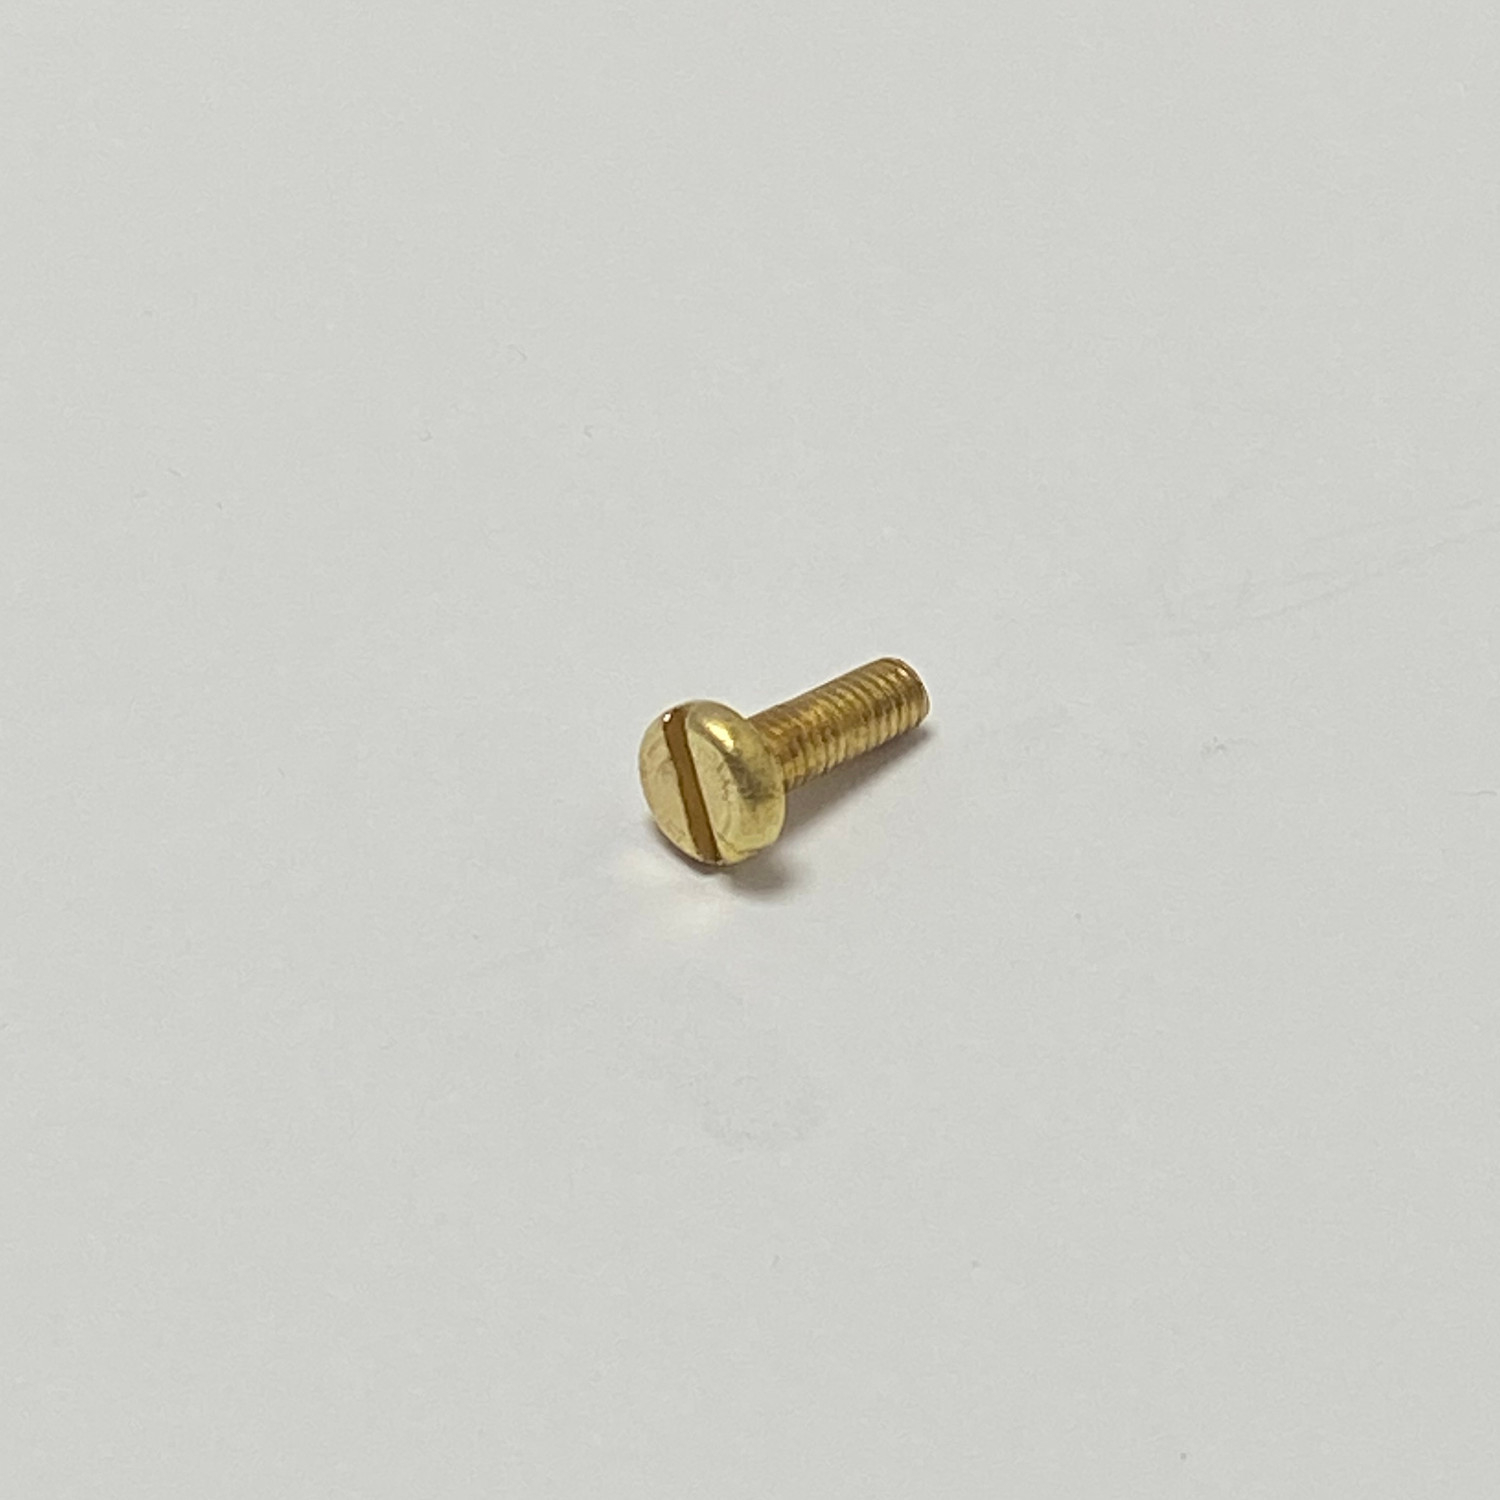 M2 X 8 BRASS SLOTTED CHEESE SCREWS